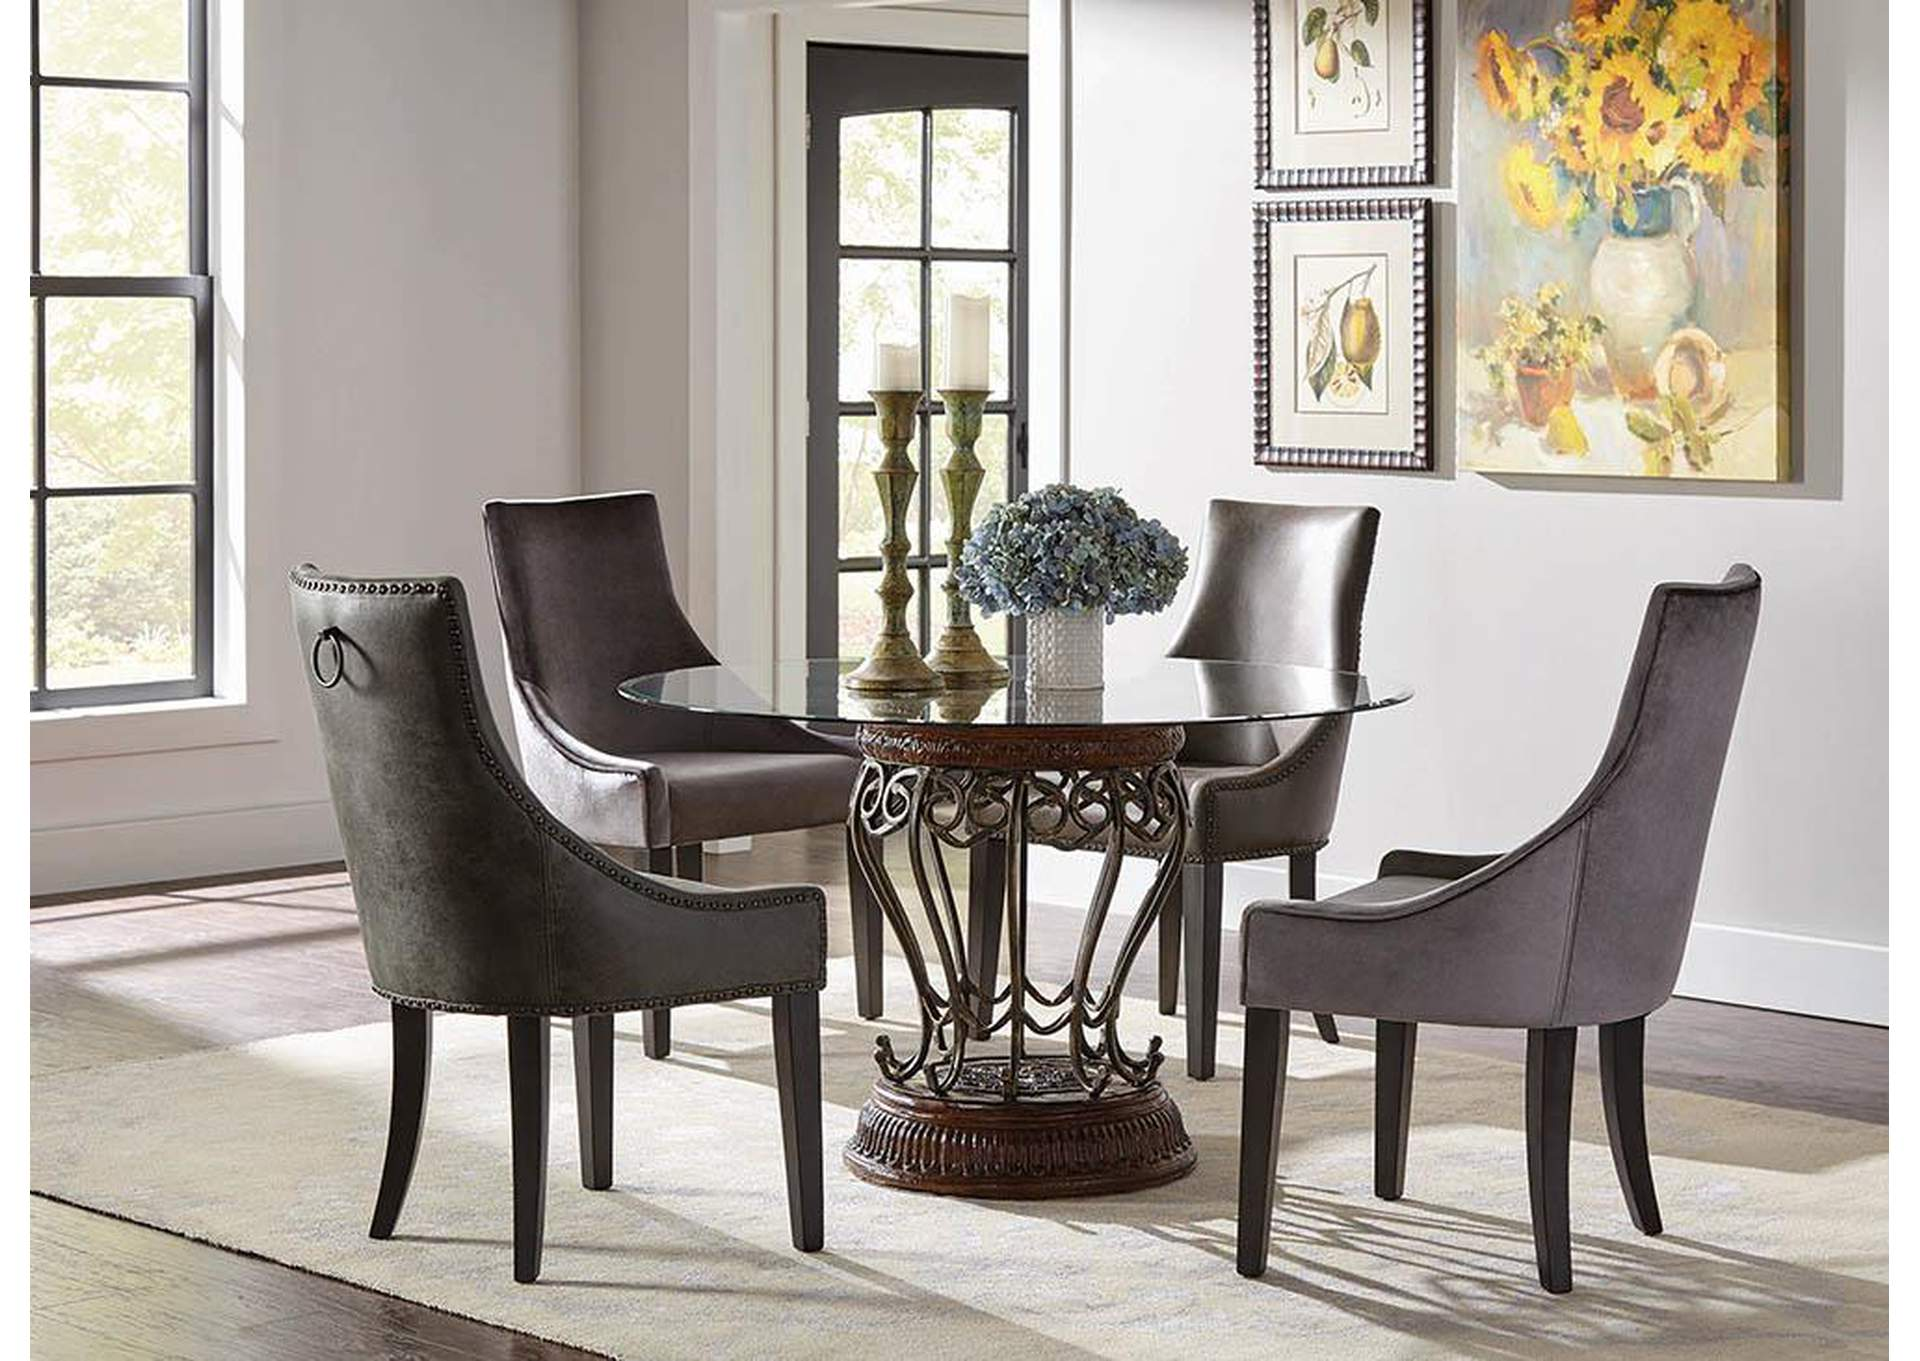 Phelps Upholstered Demi Wing Chairs Grey (Set of 2),Coaster Furniture